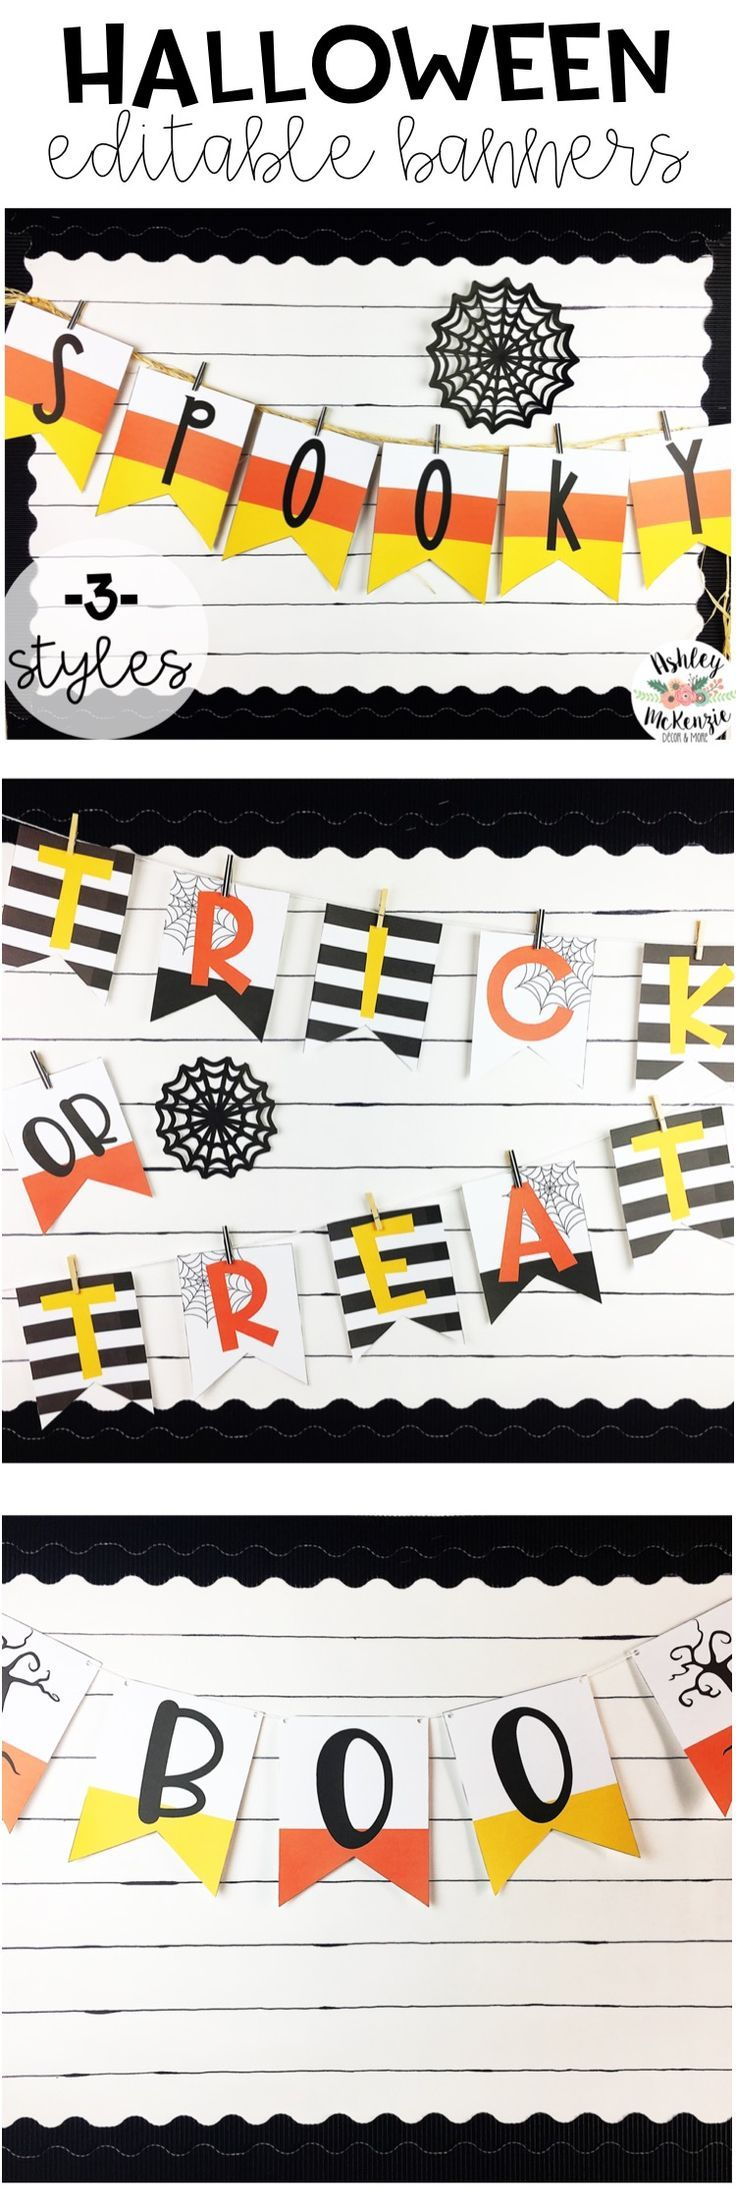 Editable Halloween Banners to decorate your classroom bulletin boards, doors, or even your home!